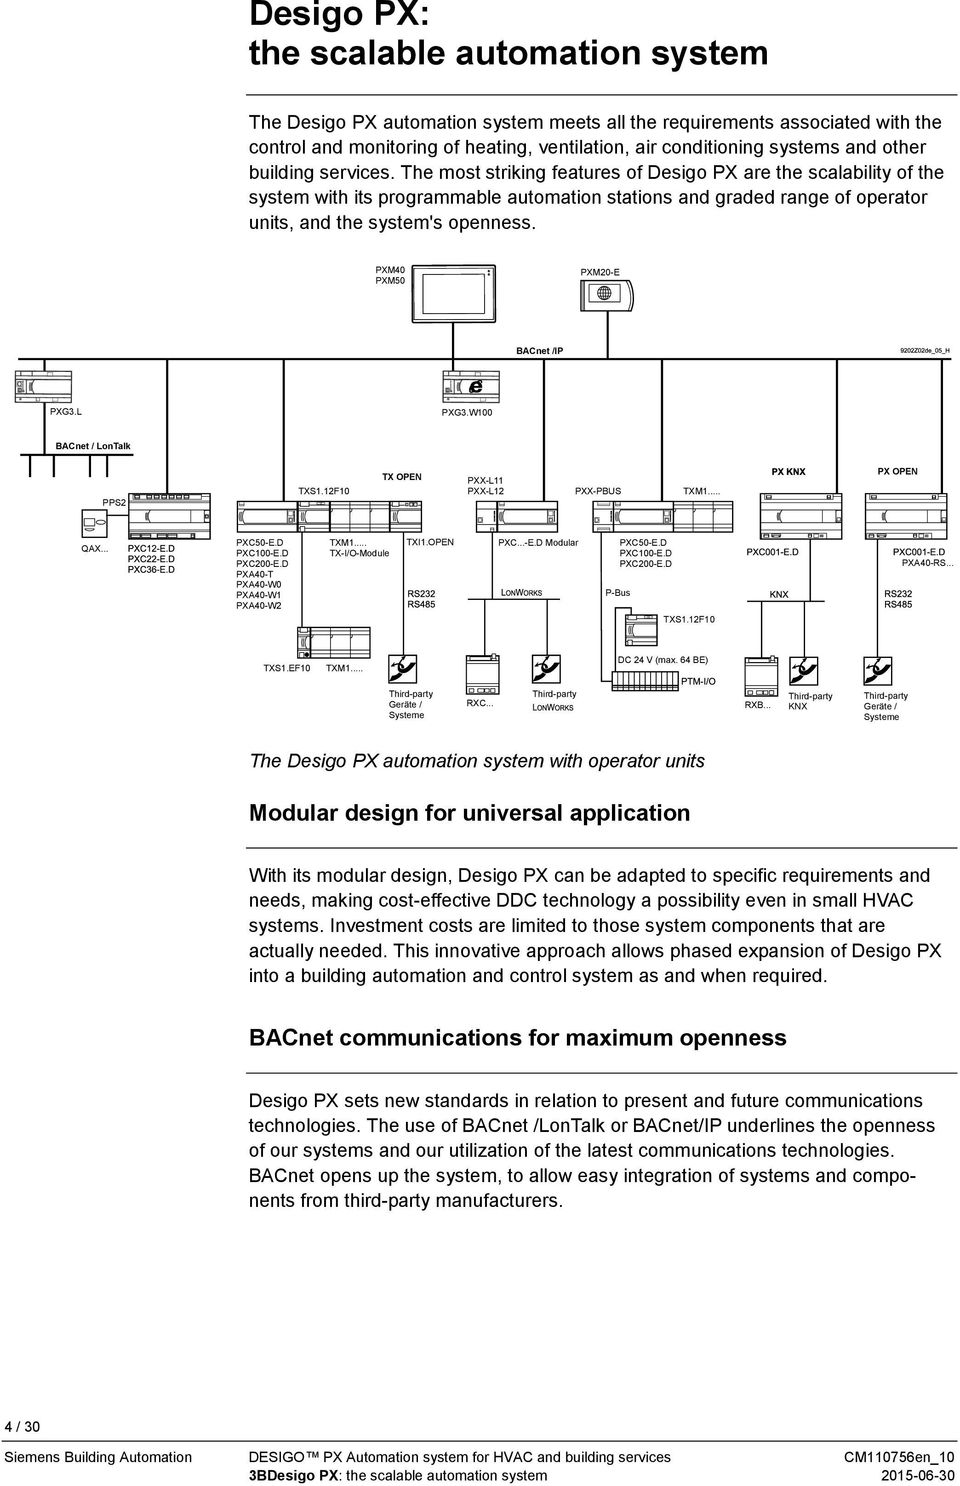 Desigo Px Automation System For Hvac And Building Services Pdf Block Diagram Led Lighting Sbd Ticom The Most Striking Features Of Are Scalability With Its Programmable